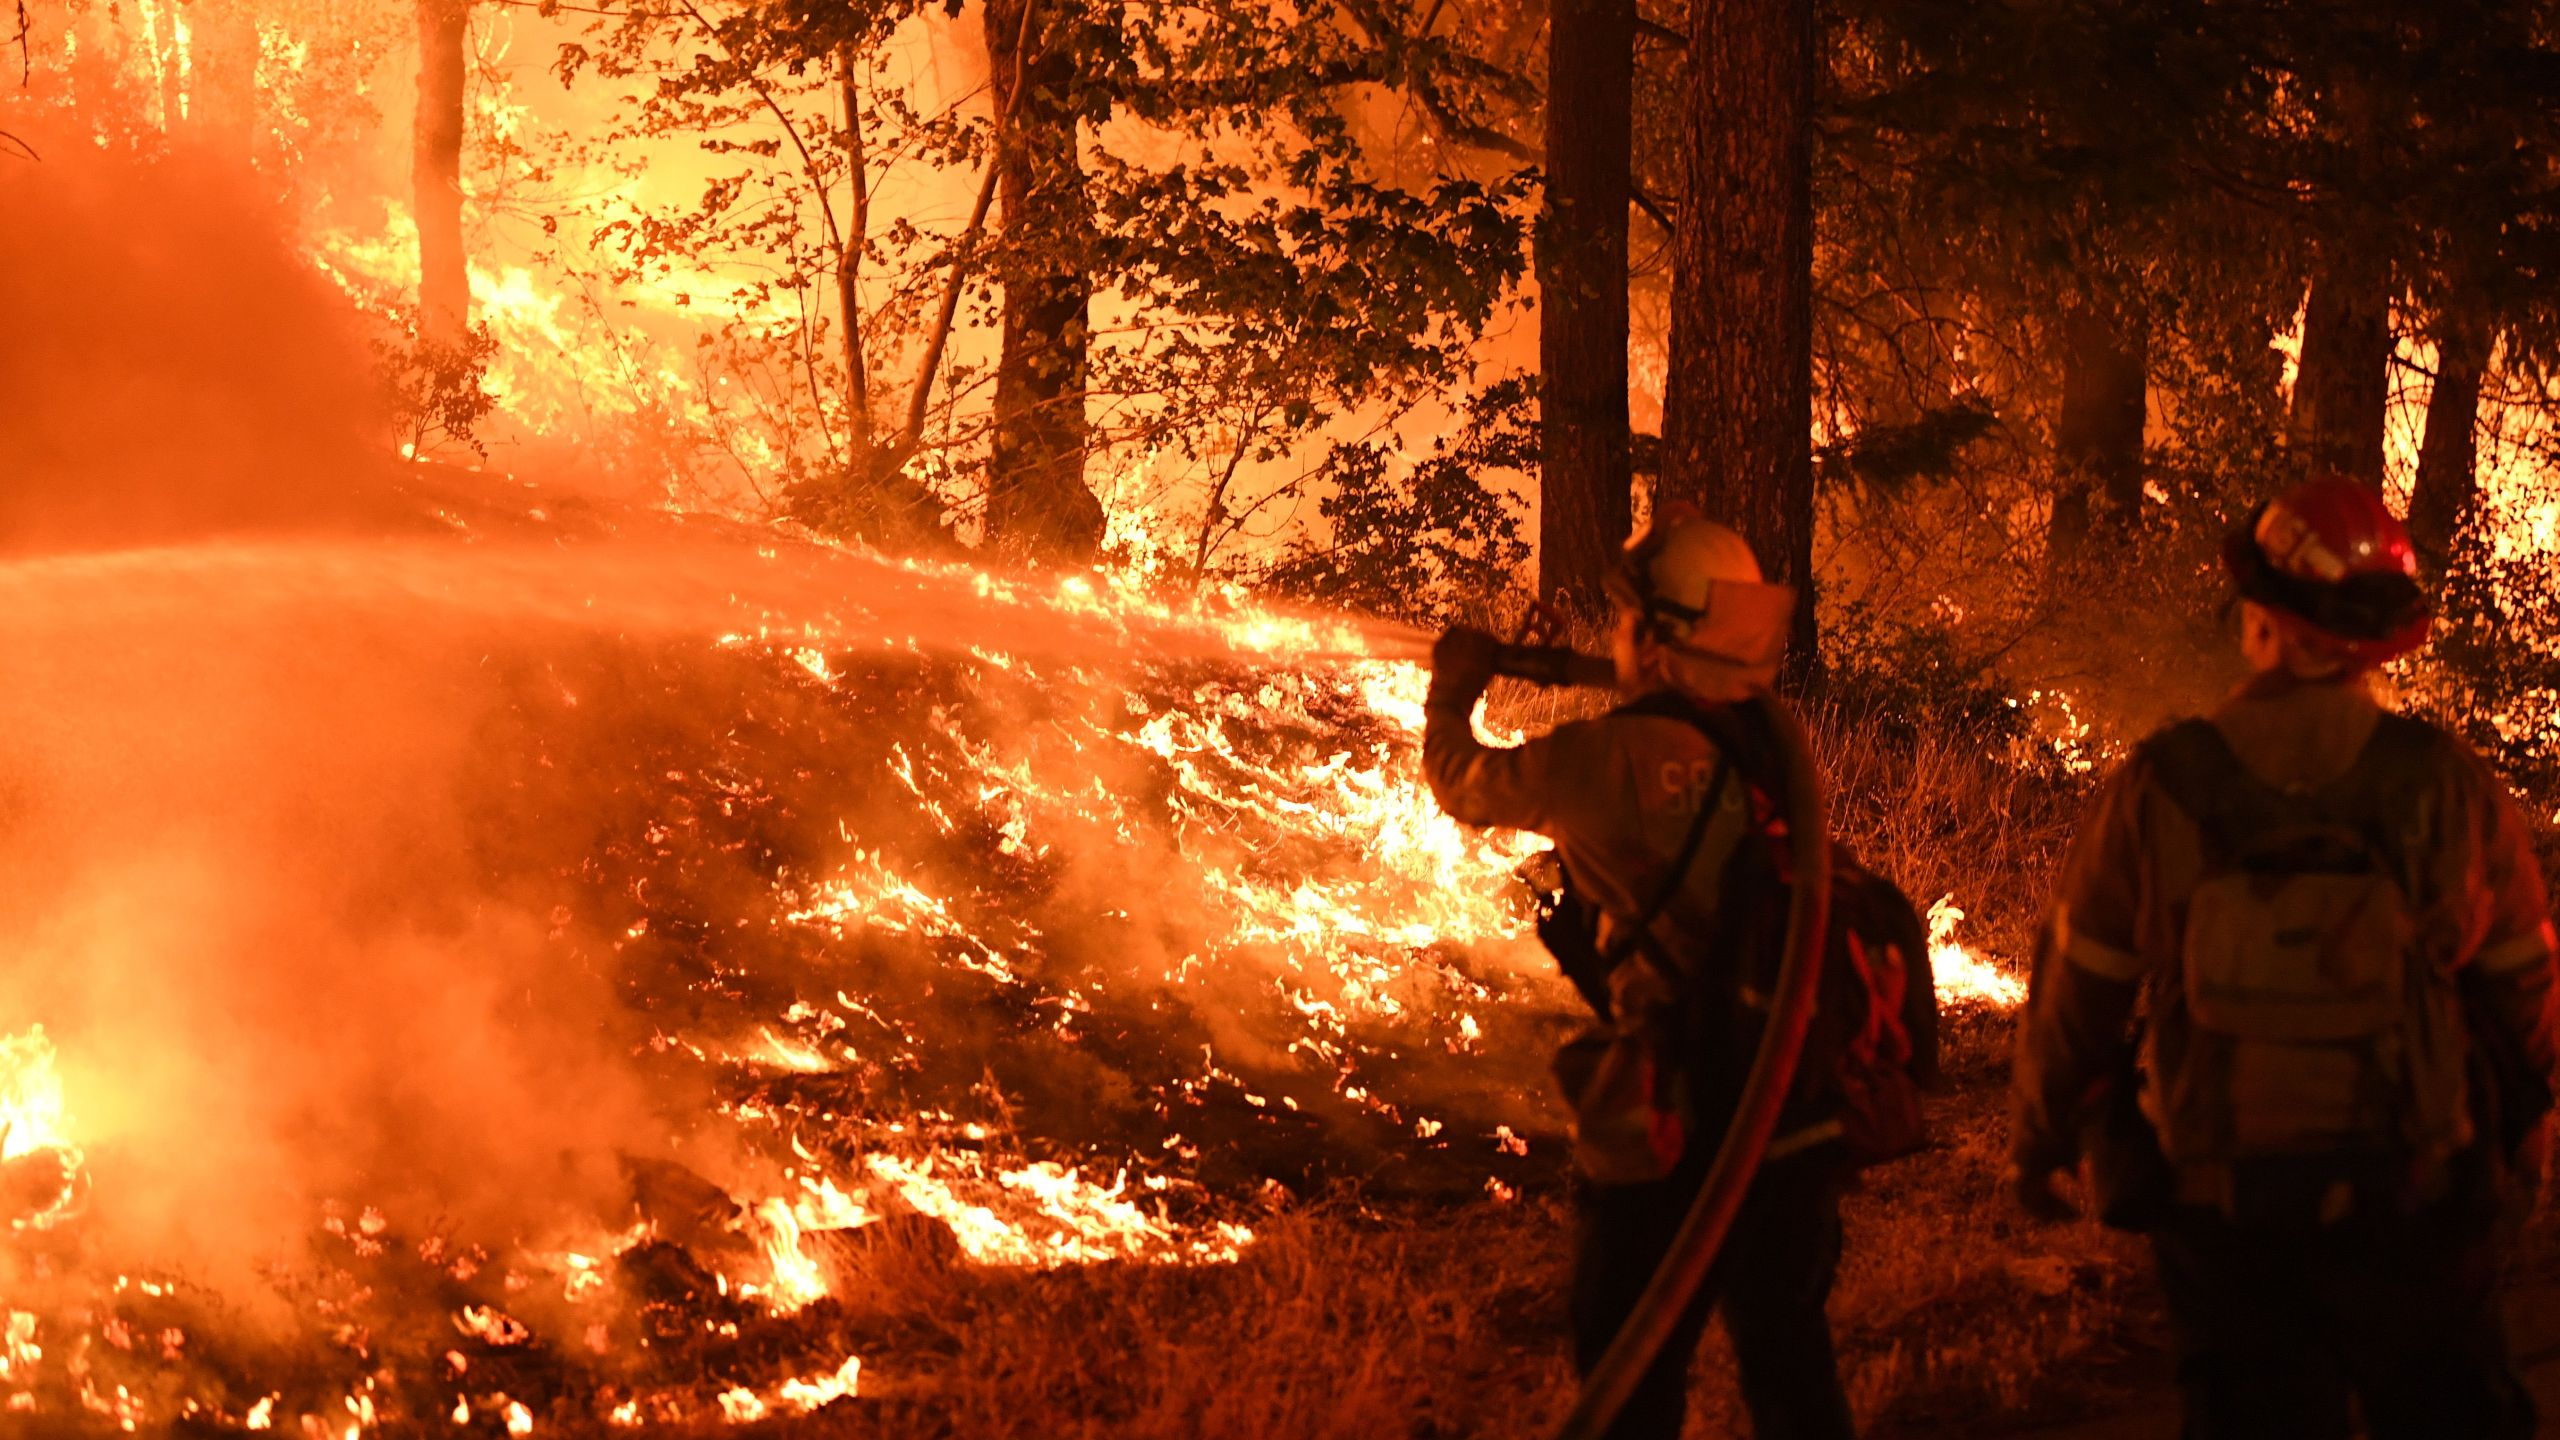 A firefighter tries to control a back burn as the Carr fire continues to spread towards the towns of Douglas City and Lewiston near Redding, California on July 31, 2018. (Credit: Mark Ralston/AFP/Getty Images)